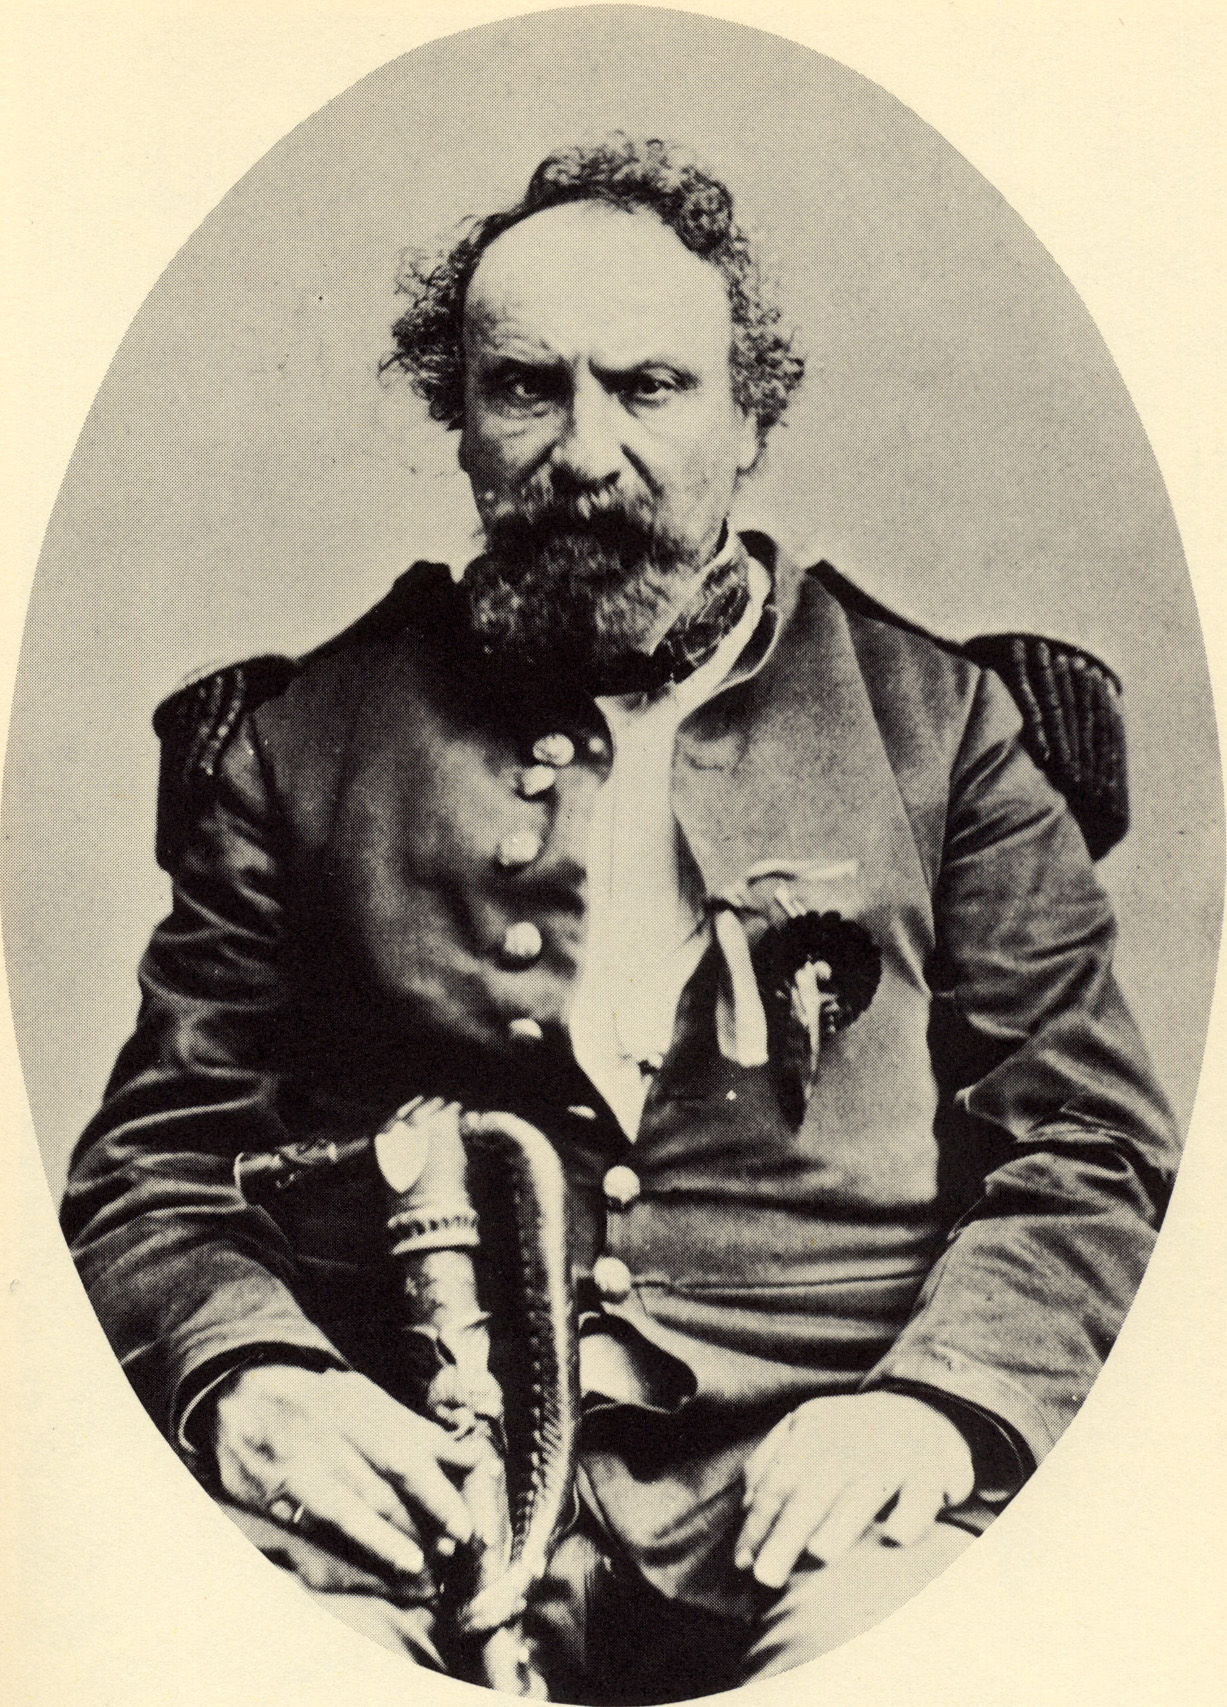 THE THIRD FOOT - EMPEROR NORTON I - It's the hottest day of the year in the UK as this episode drops, so perfect weather to sprawl on a beach or under a tree and get a bit of extra knowledge about one of our favourite people. We chose Emperor Norton I of the United States as our world's worst monarch so in this bonus episode, paid for by our Patreon donors, Barry and Ben take a longer, even more loving look at our glorious leader. A San Francisco eccentric with a penchant for proclamations, excellent uniforms and a benevolent outlook on life, if you've never heard of him before then you're in for a treat. All hail the emperor!